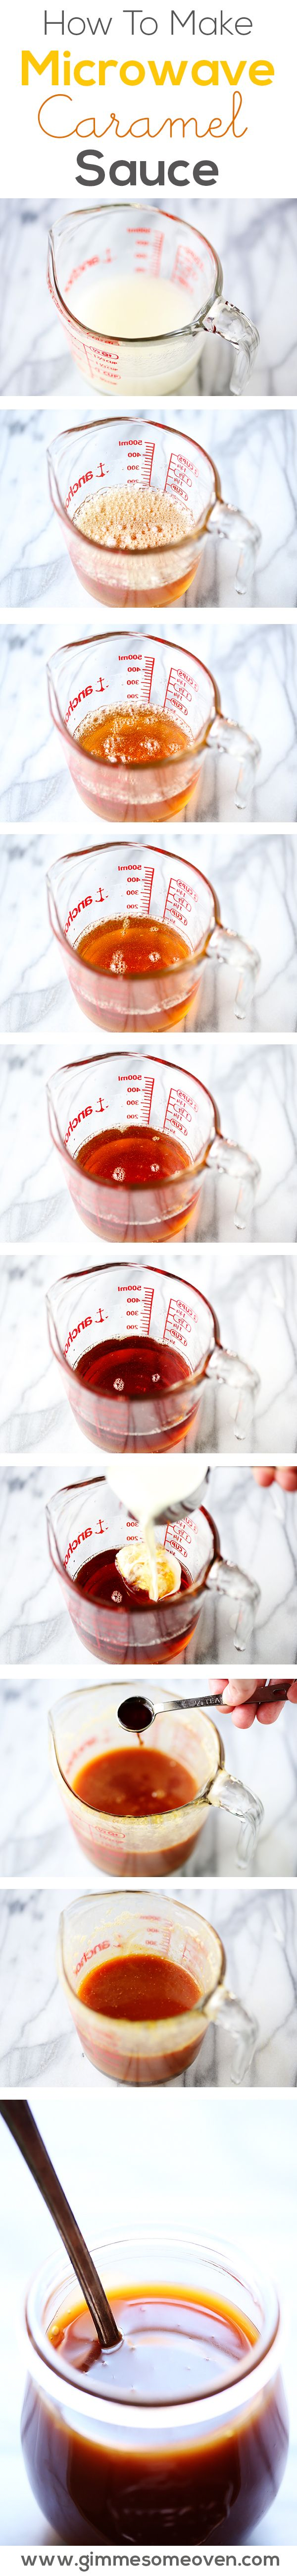 Make homemade caramel sauce in the microwave in just 10 minutes!   gimmesomeoven.com